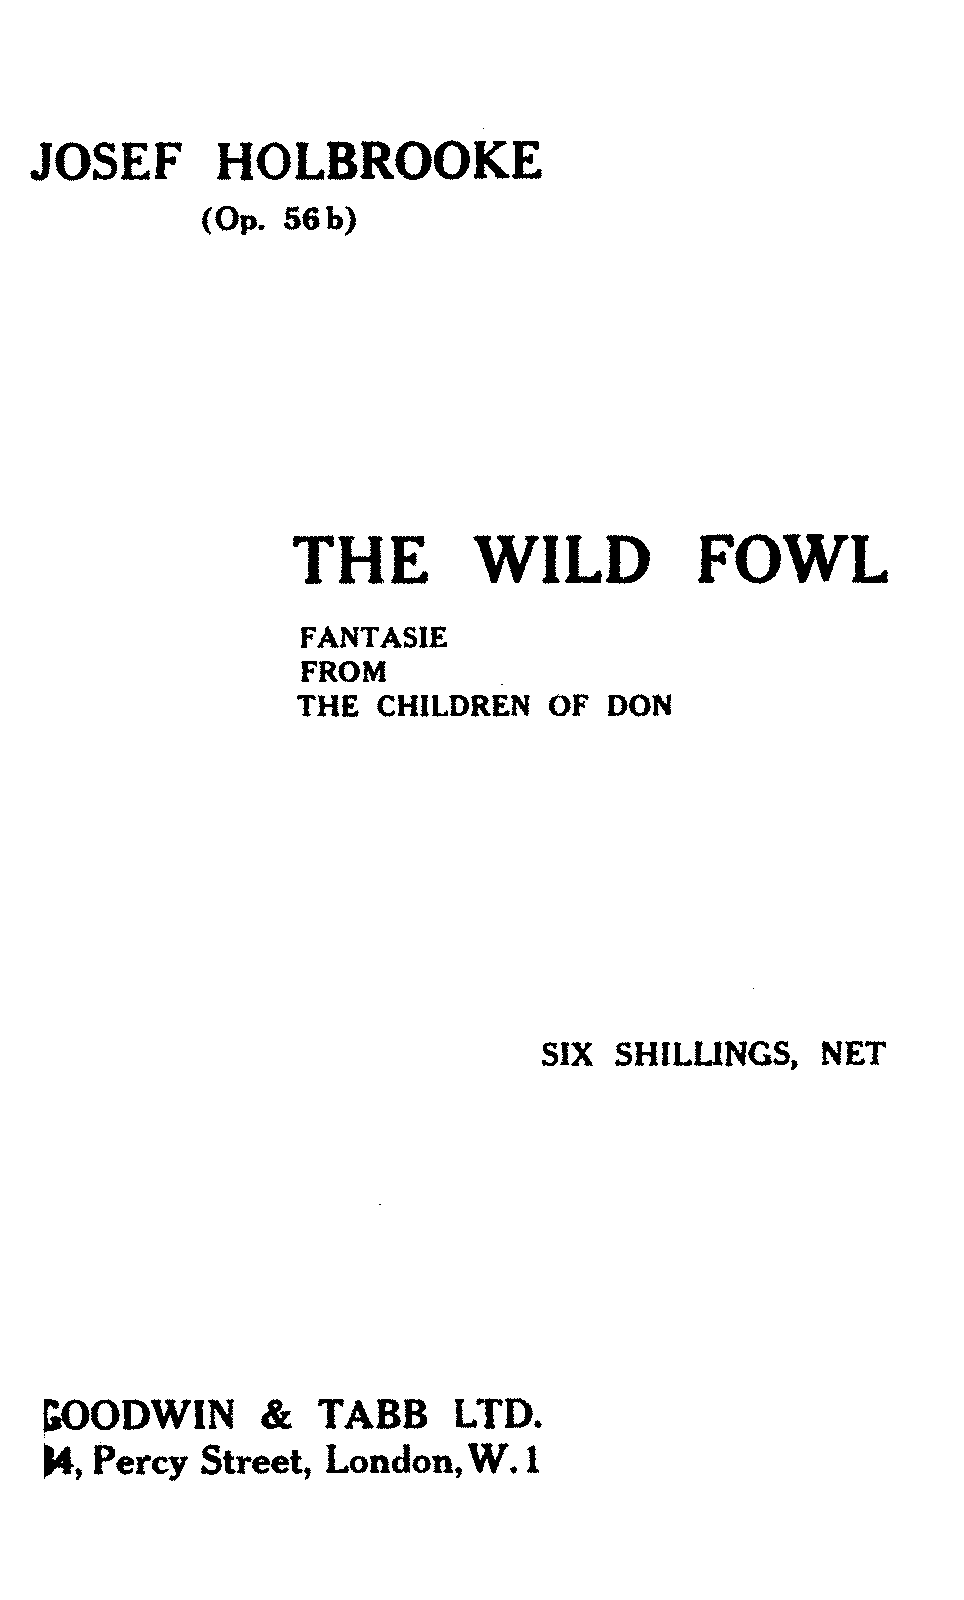 PMLP58249-Holbrooke - The Wild Fowl Fantasie from The Children of Don Op 56b.pdf